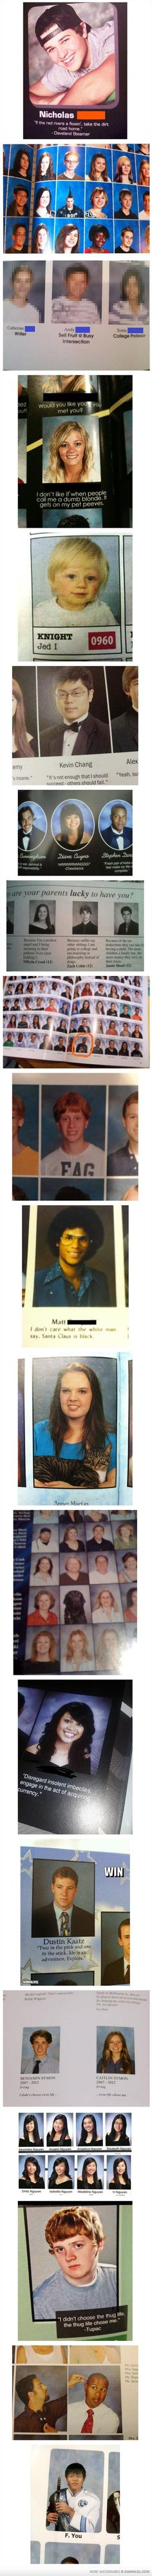 Yearbook wins and fails!